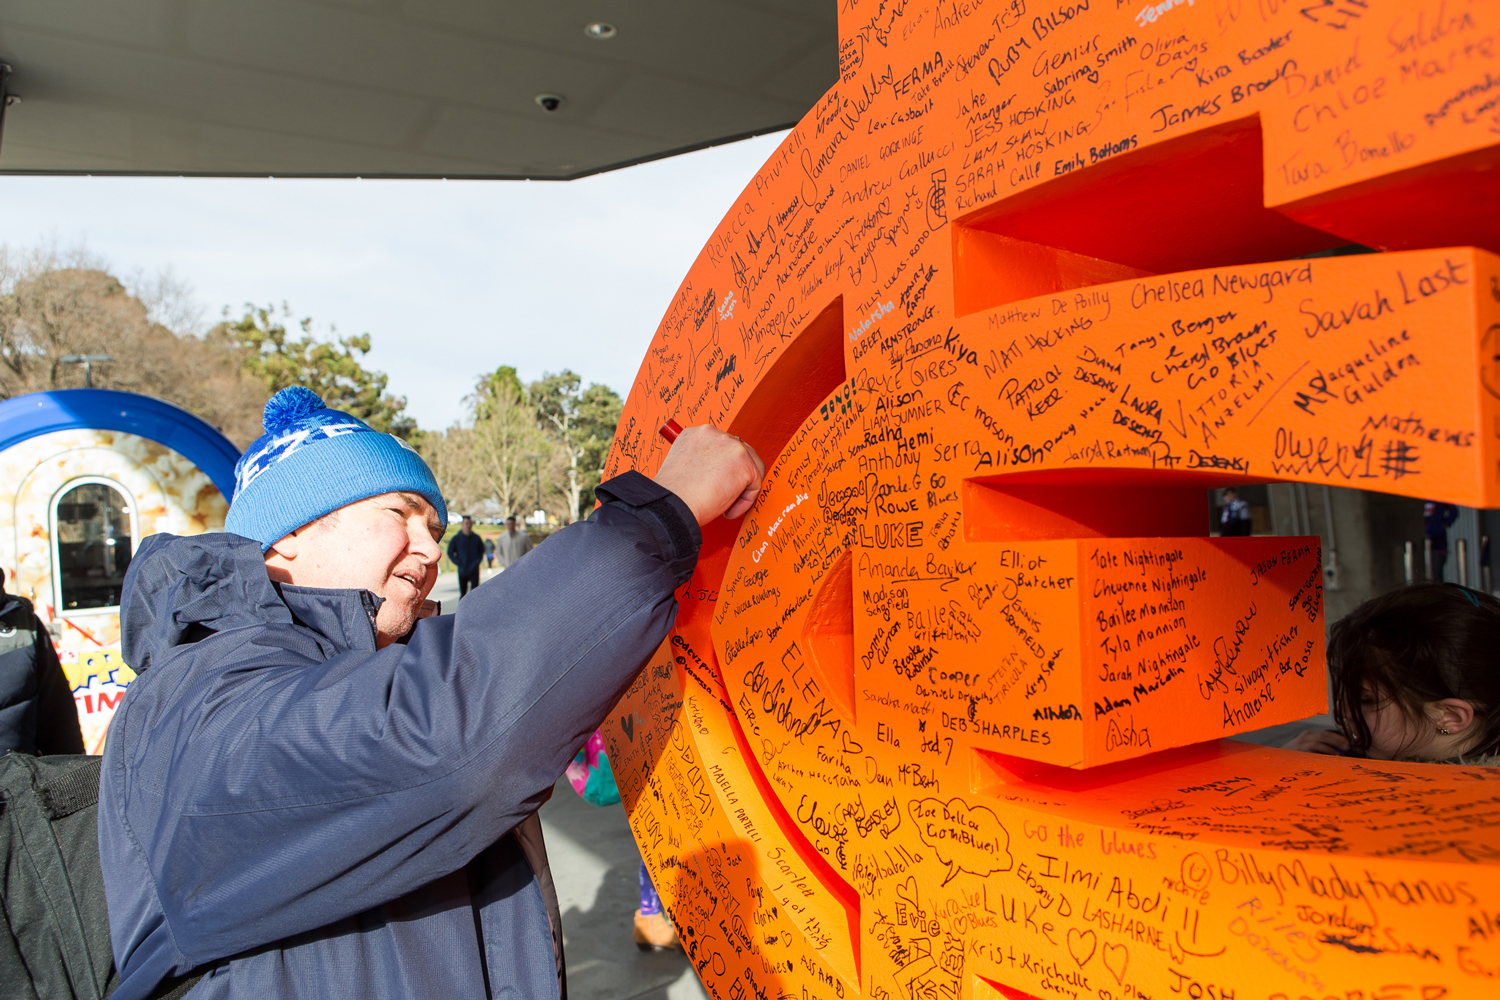 Supporters write their names on the CARLTON RESPECTS monogram to pledge their support for respect and equality.